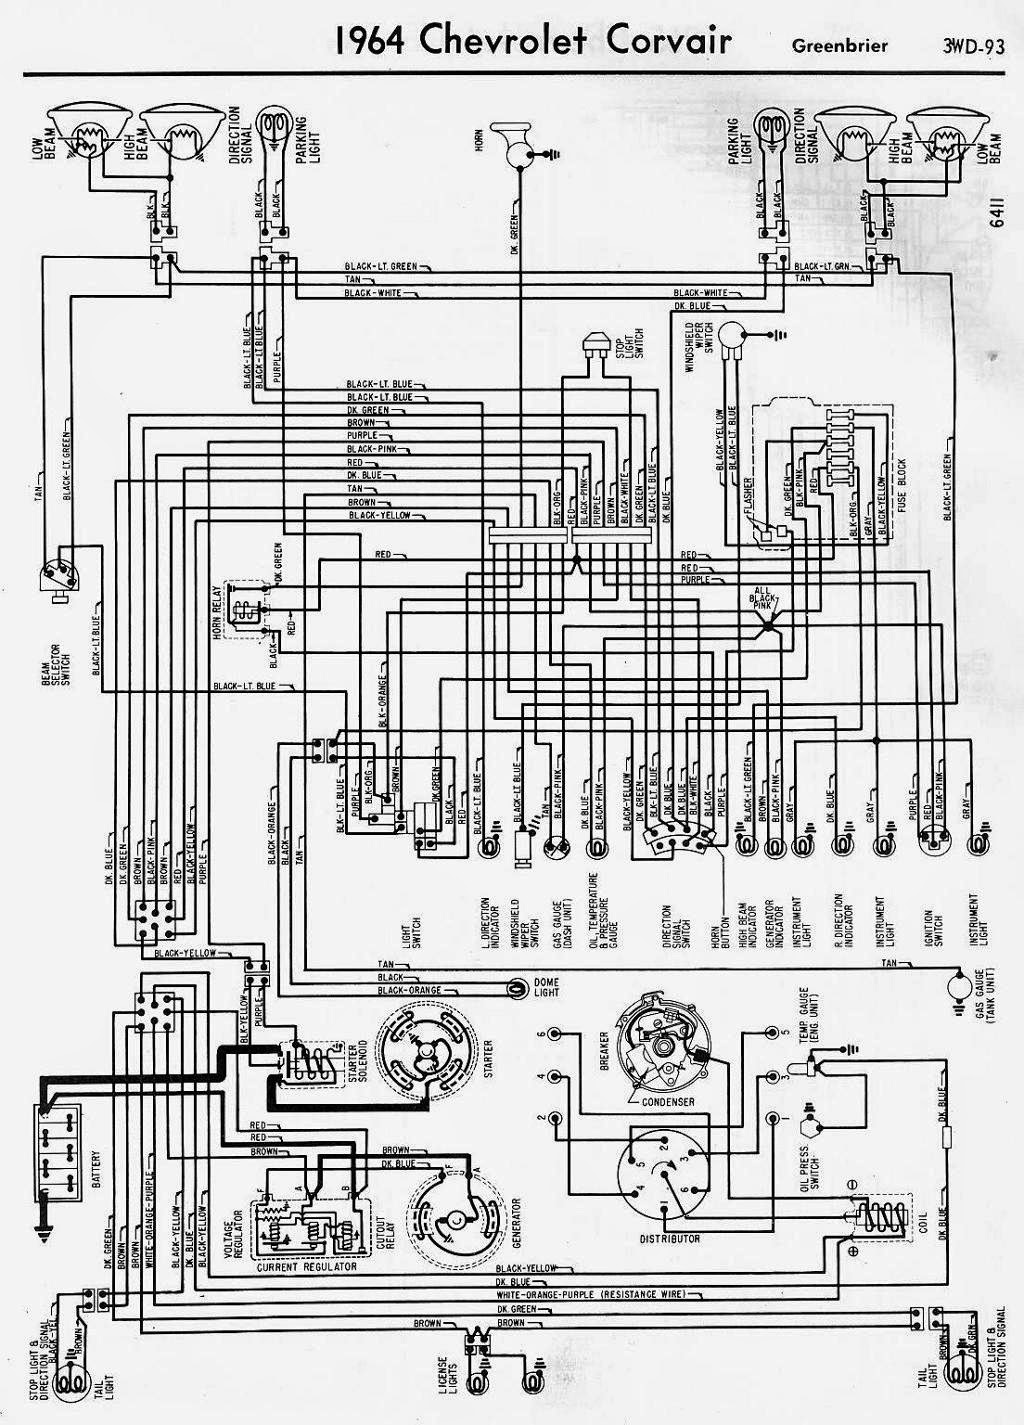 The 1964 Chevrolet Corvair Greenbrier Wiring Diagram ...